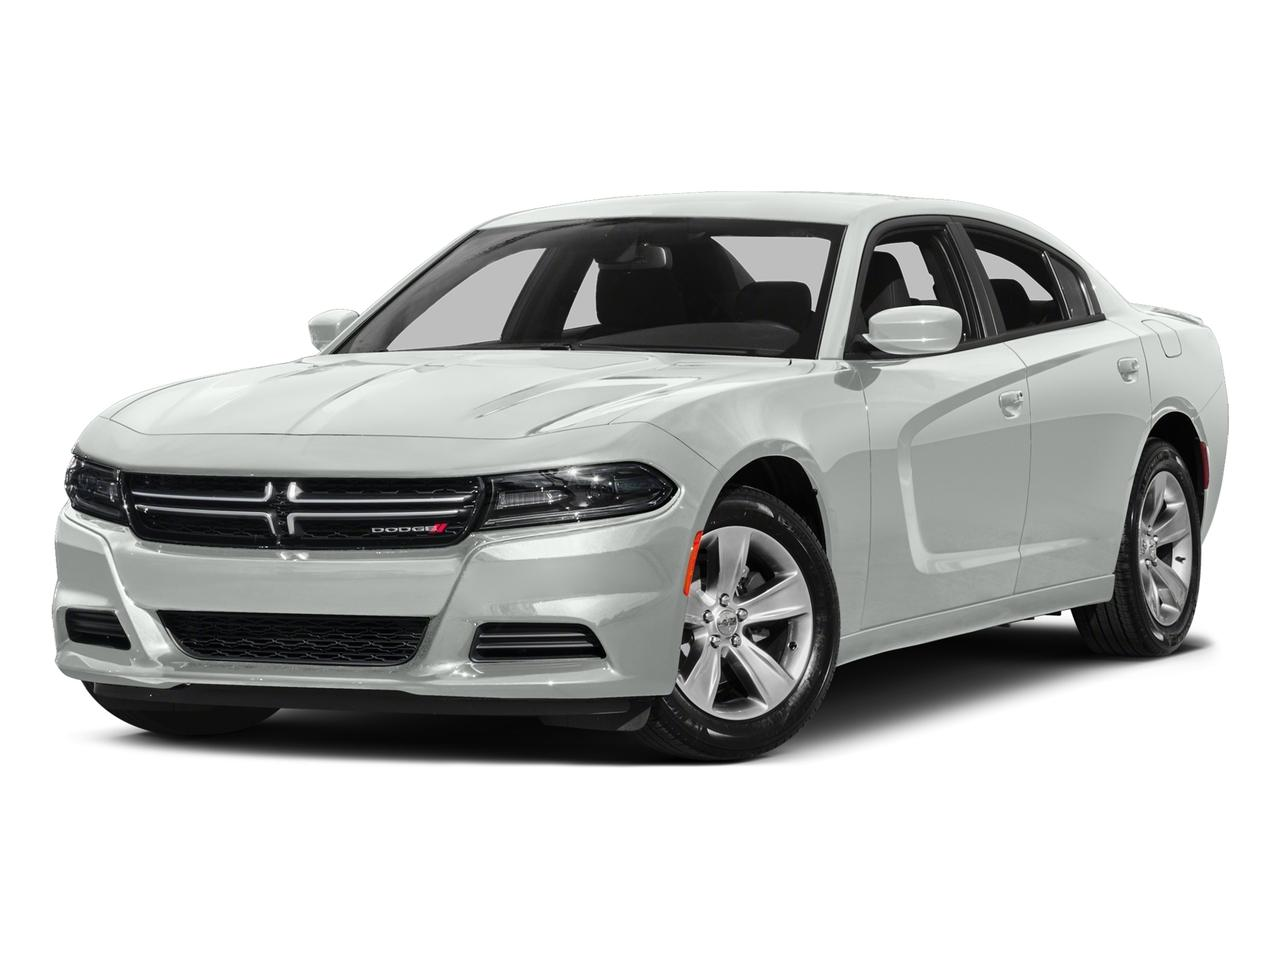 2015 Dodge Charger Vehicle Photo in Pawling, NY 12564-3219